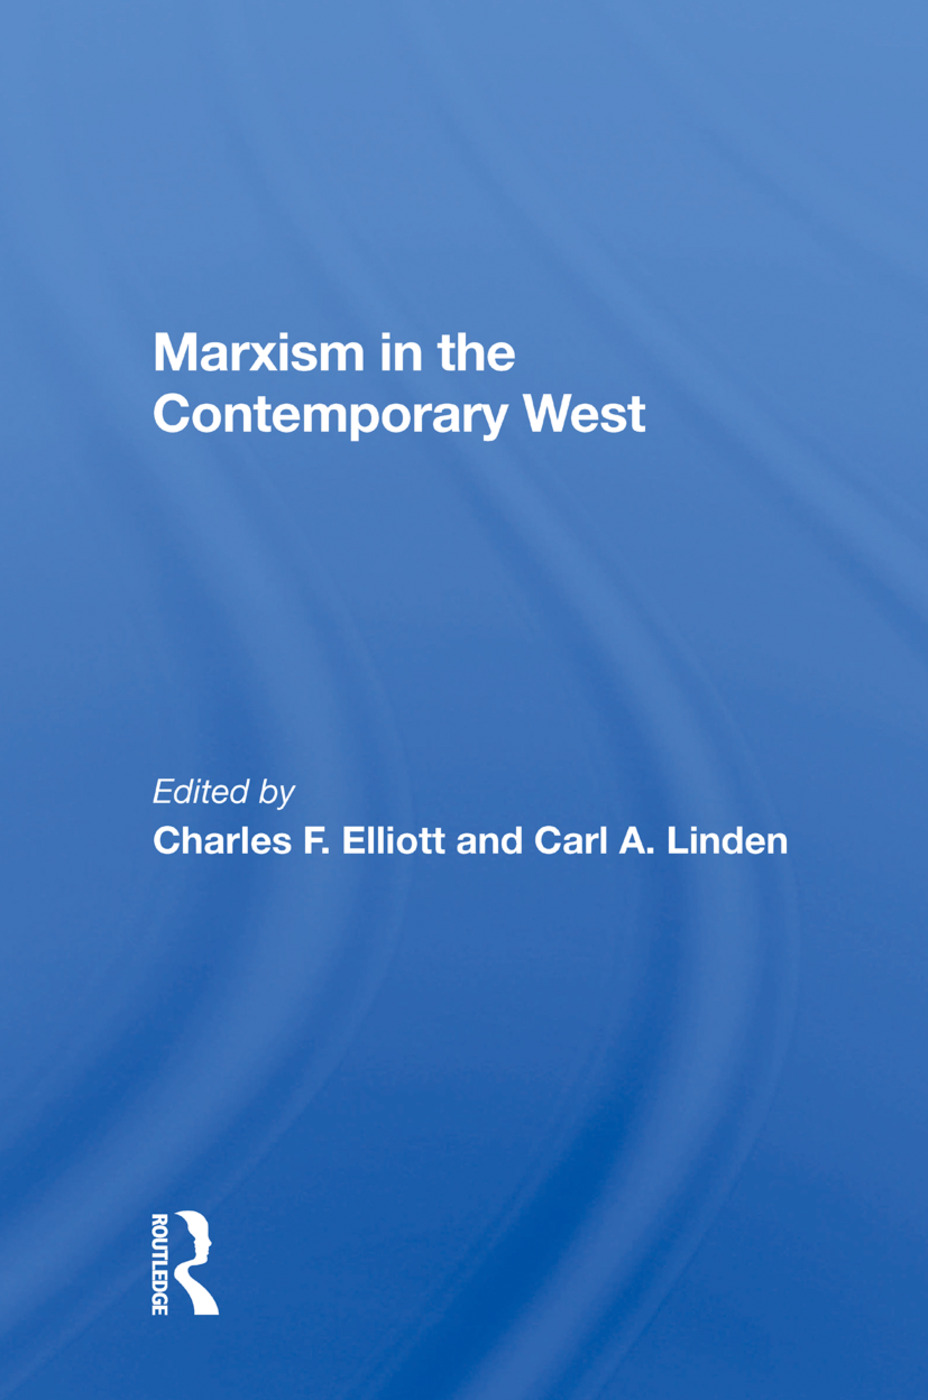 Marxism in the Contemporary West